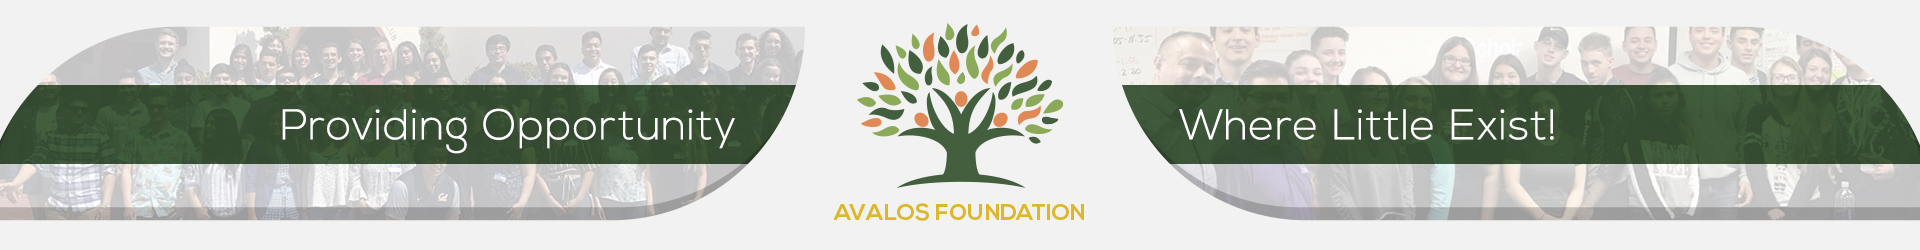 Avalos Foundation - top header